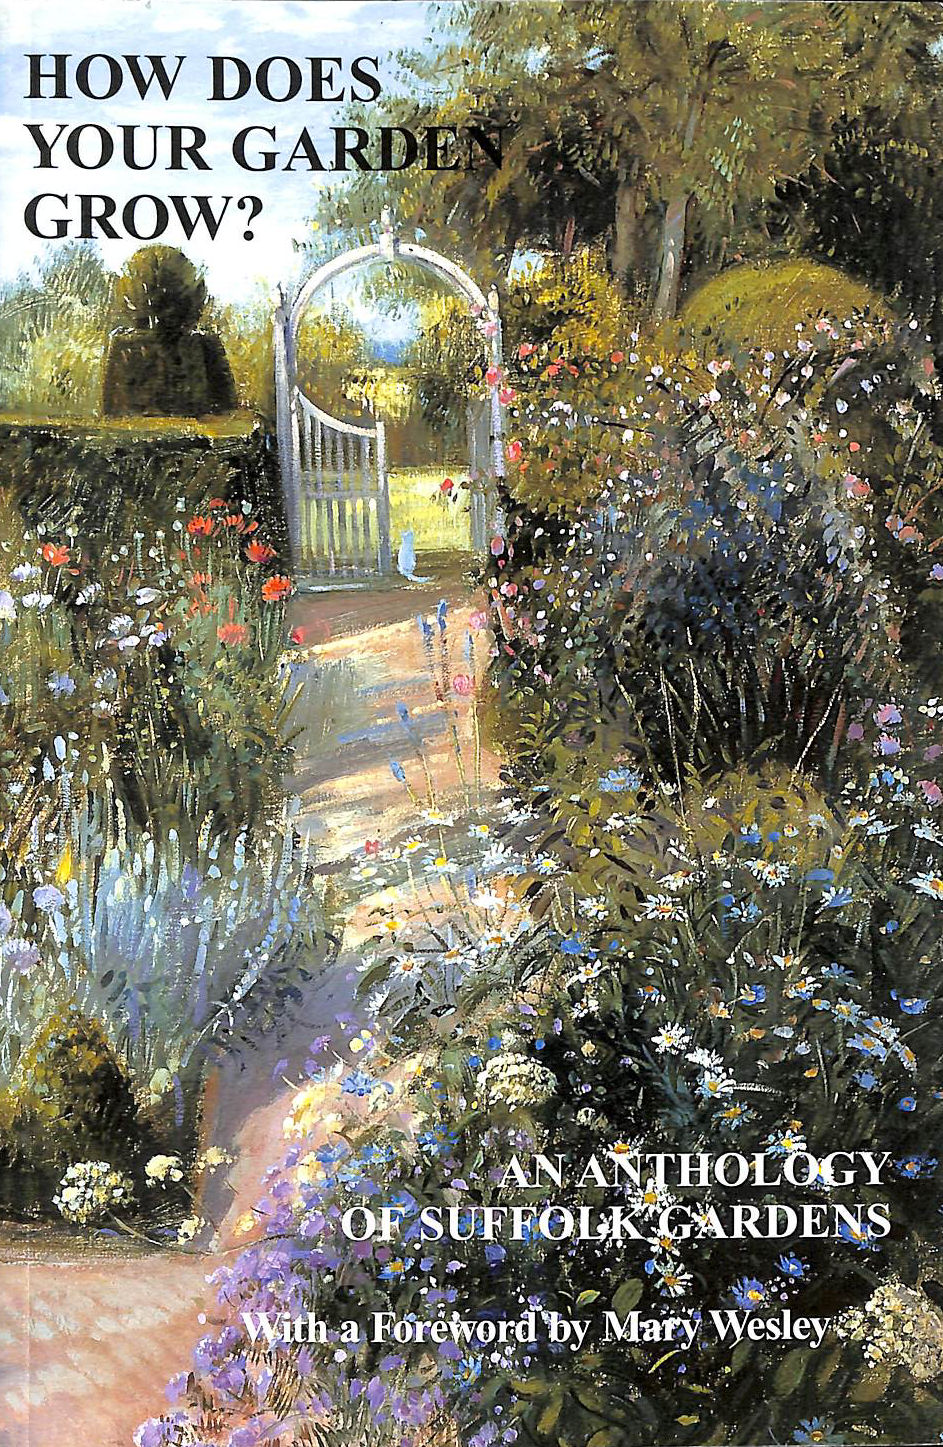 Image for HOW DOES YOUR GARDEN GROW?: AN ANTHOLOGY OF SUFFOLK GARDENS.